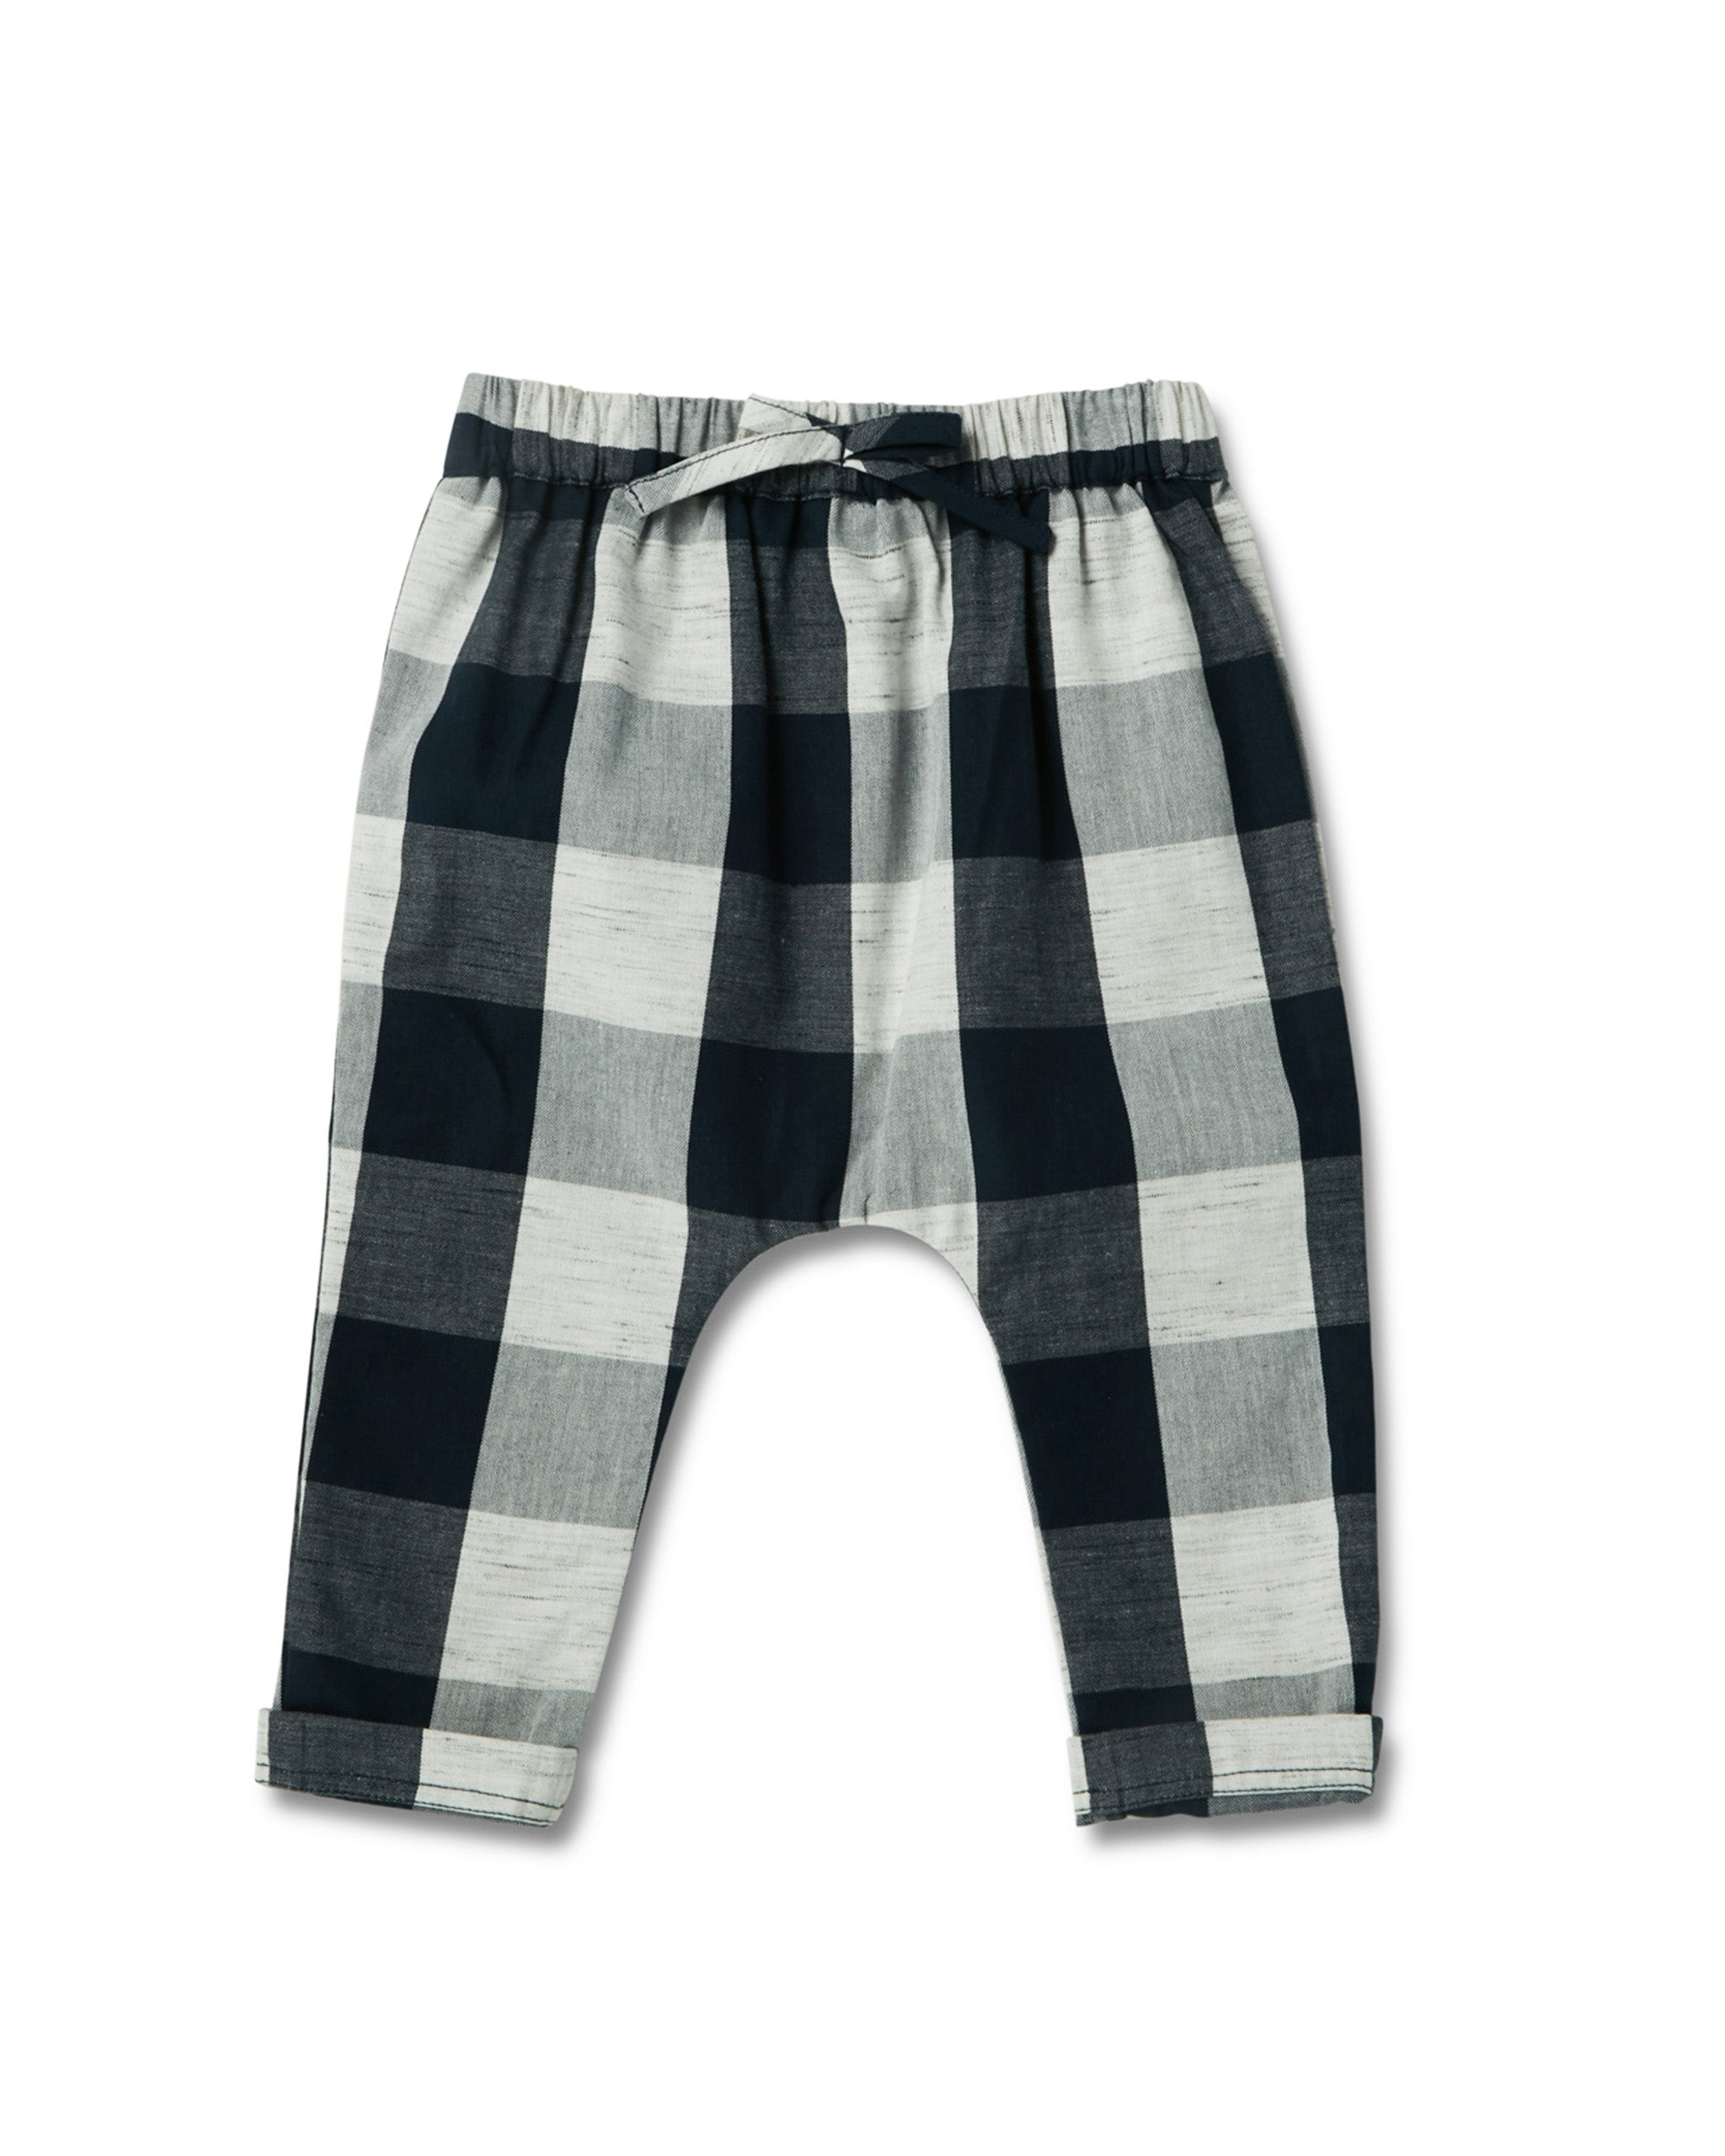 Falcon Pant - Blanket Check